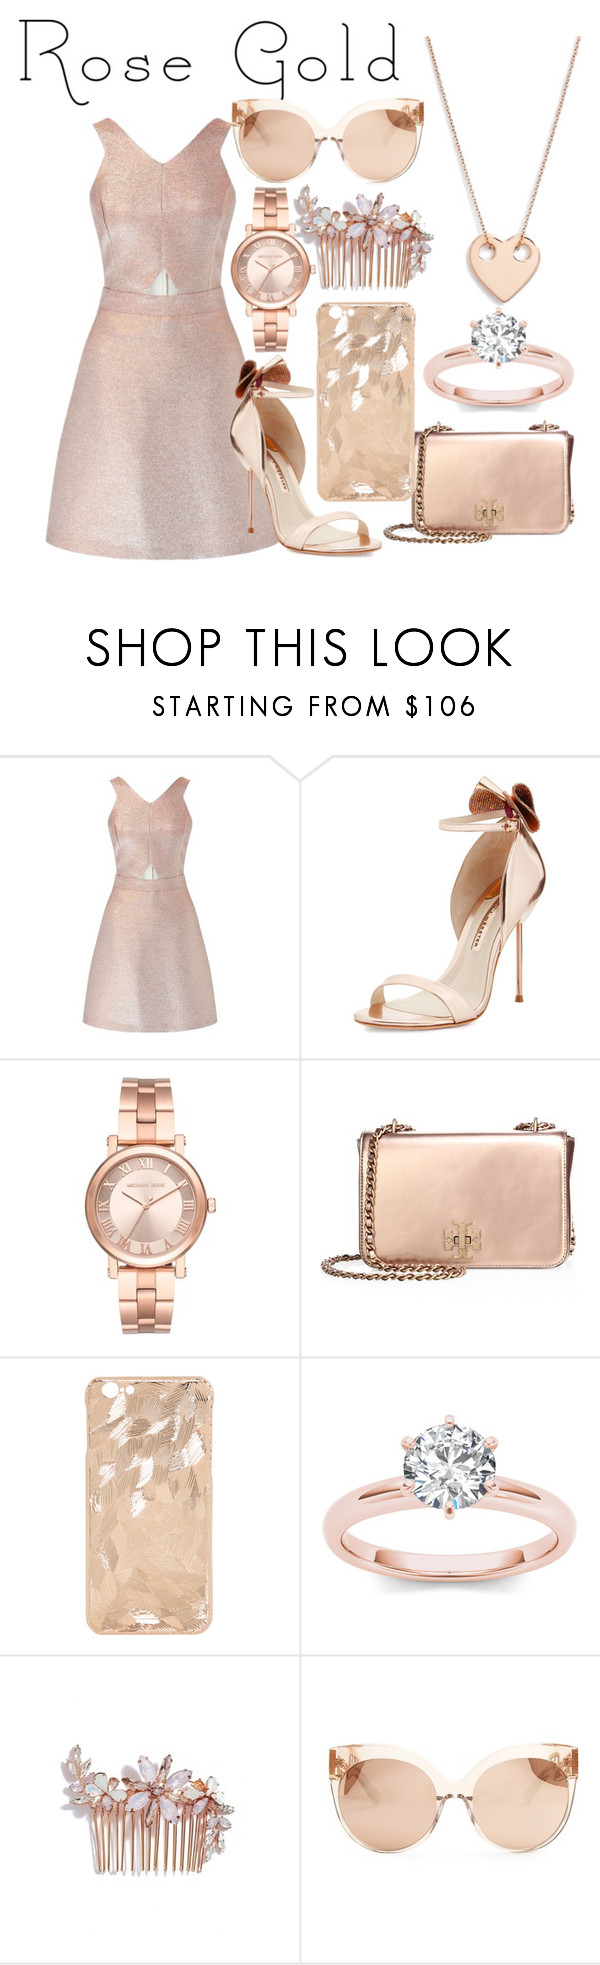 """""""Rose Gold Beauty"""" by pandapotter26 ❤ liked on Polyvore featuring Miss Selfridge, Sophia Webster, Michael Kors, Tory Burch, Camilla Christine, Linda Farrow and Ginette NY"""